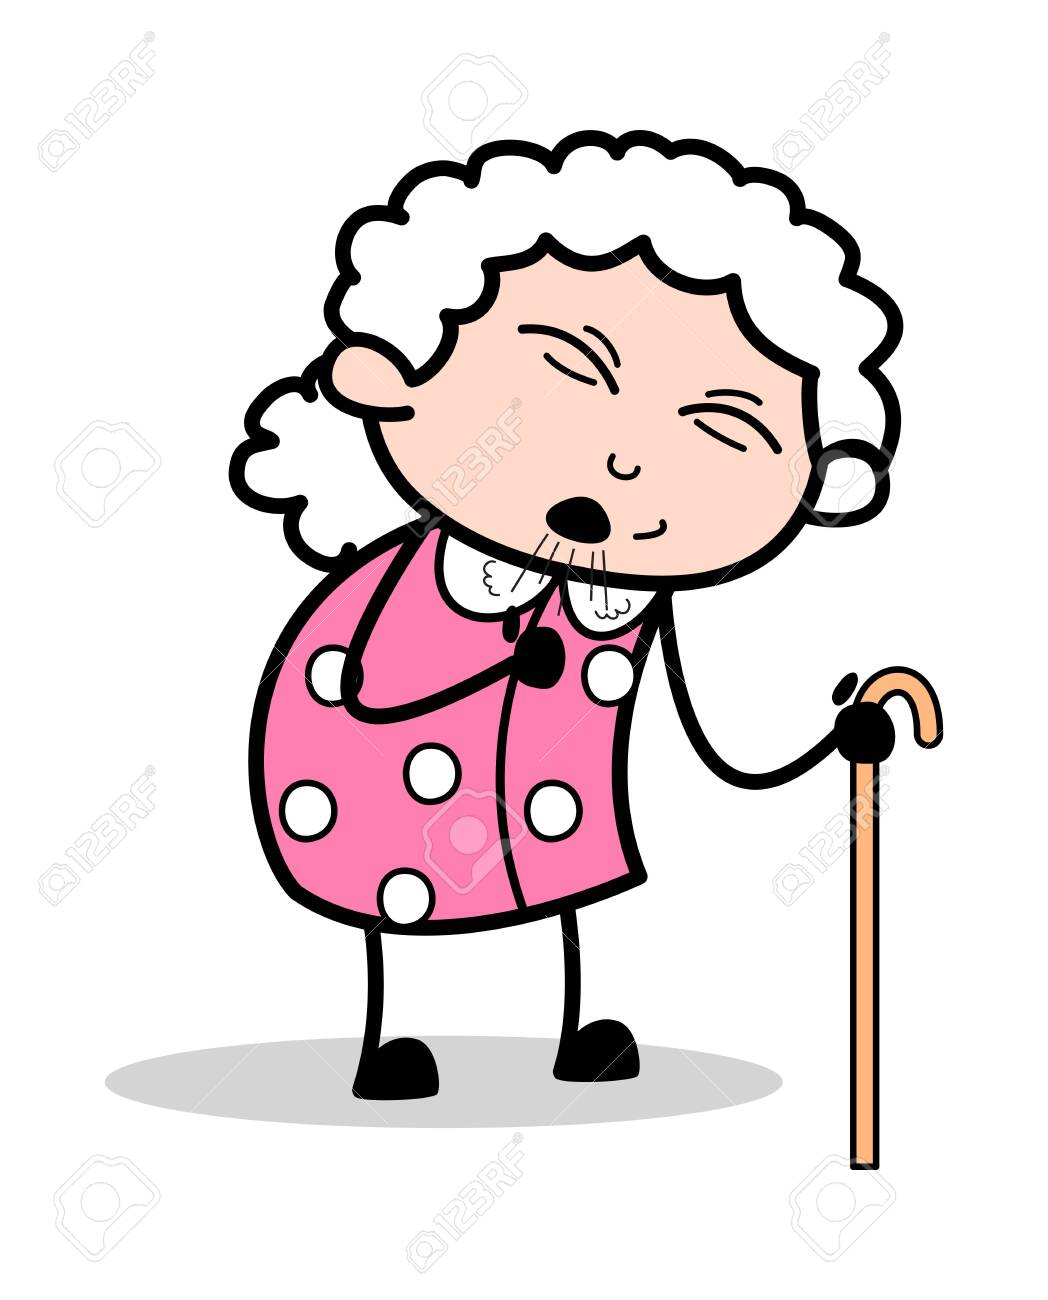 cough old woman cartoon granny vector illustration royalty free cliparts vectors and stock illustration image 123750523 cough old woman cartoon granny vector illustration